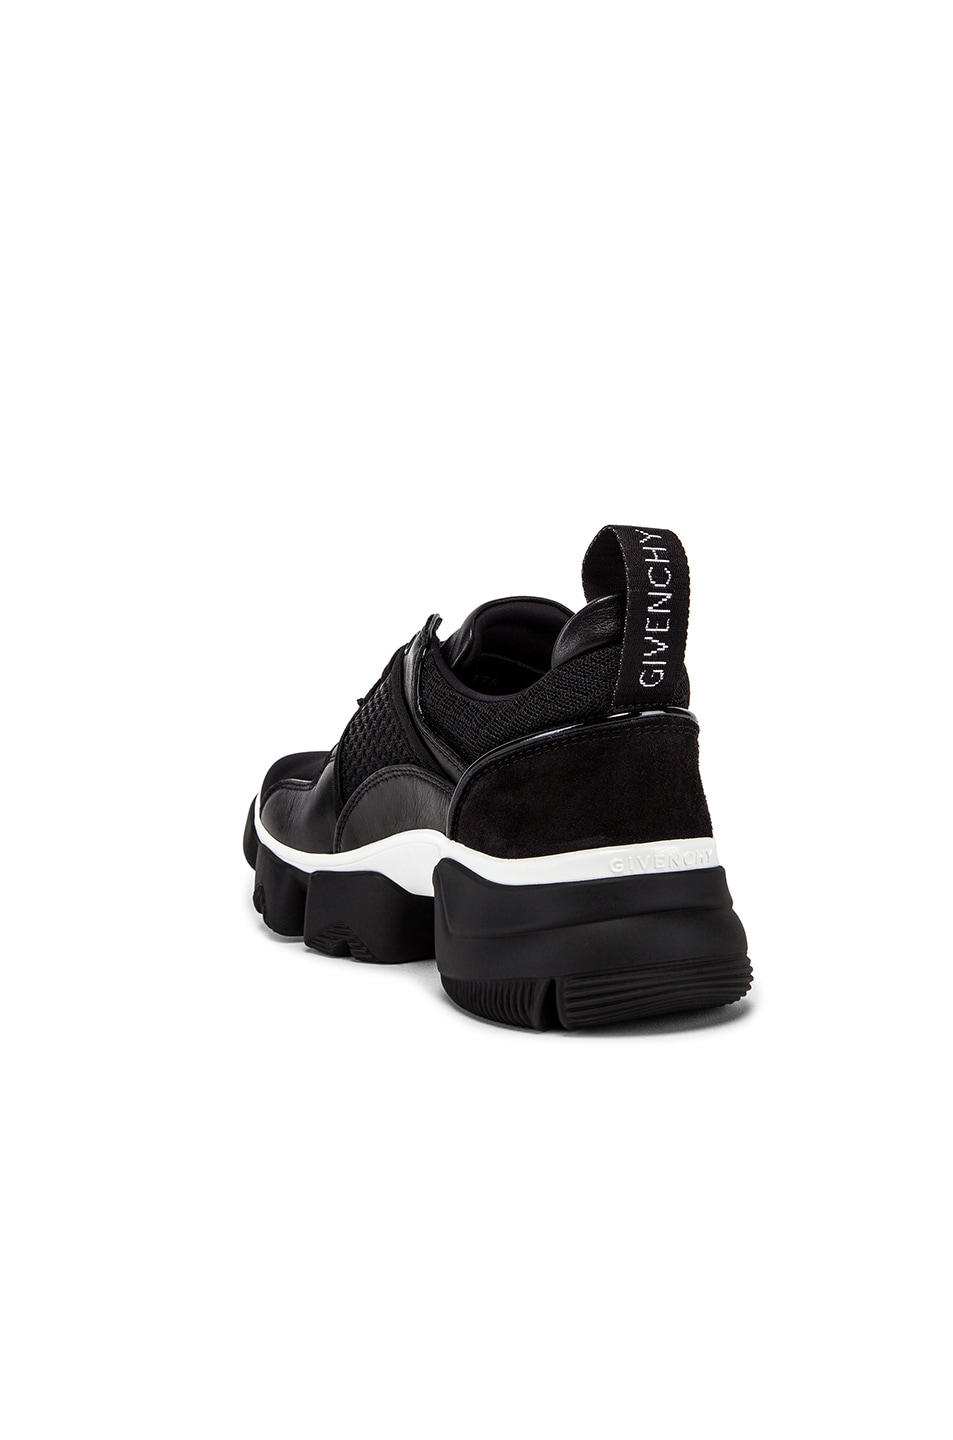 Image 3 of Givenchy Jaw Low Sneakers in Black & White